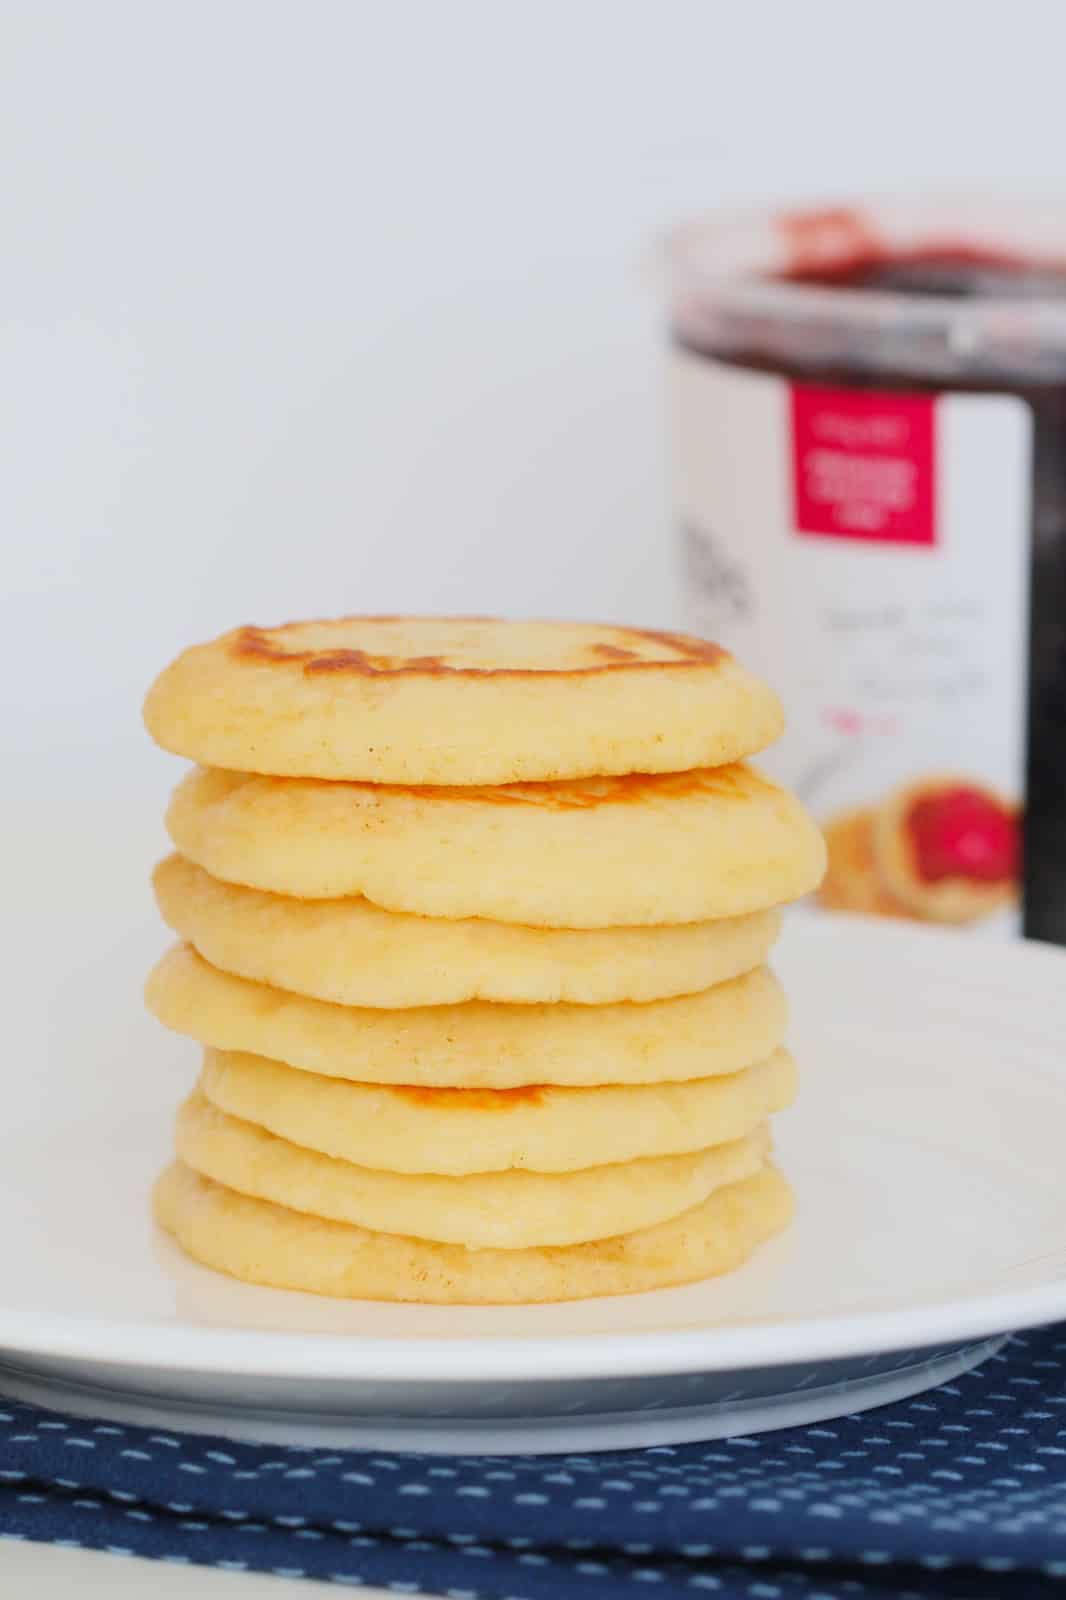 A stack of pikelets on a white plate with a jar of jam in the background..